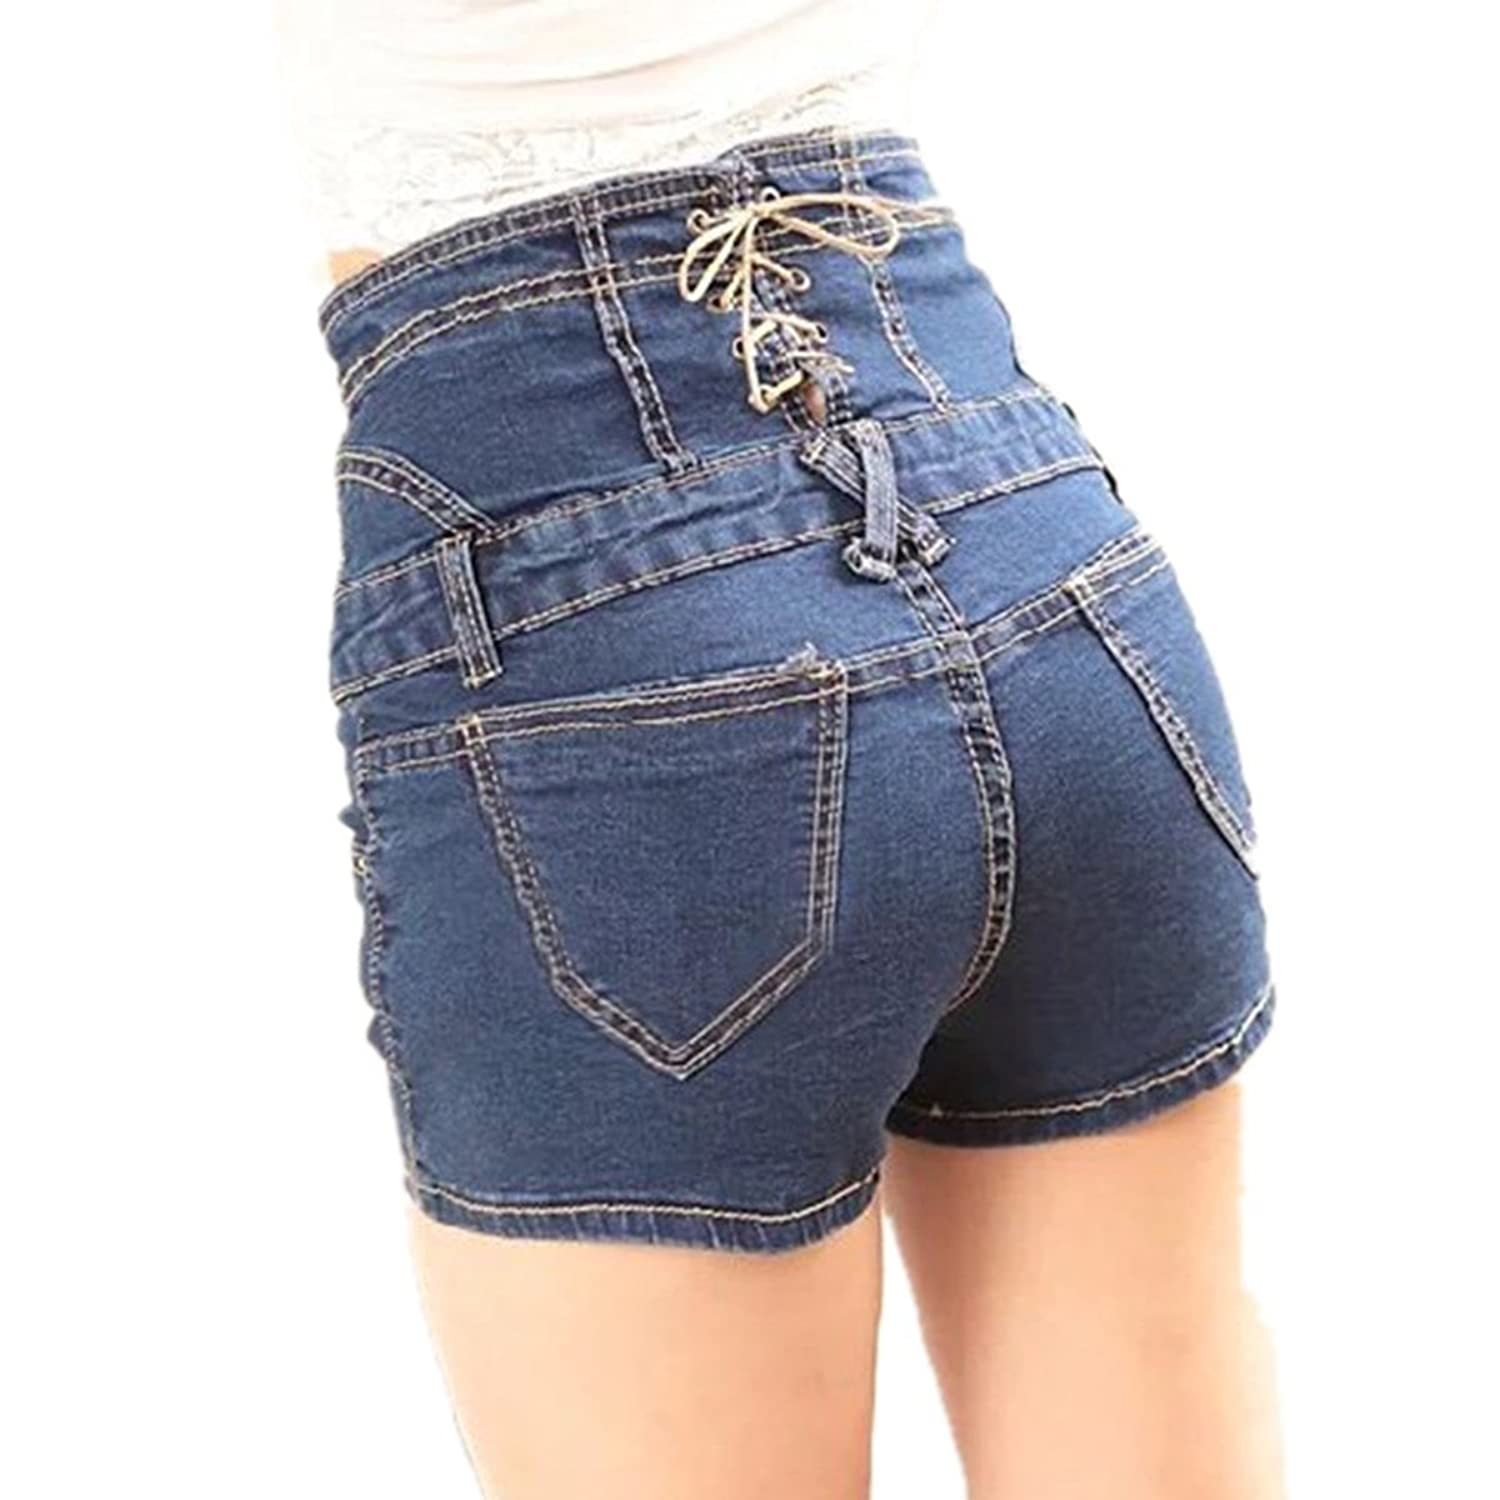 lobty sexy frauen weinlese hohe taille jeans kurz jeans denim shorts bermuda jeans shorts. Black Bedroom Furniture Sets. Home Design Ideas